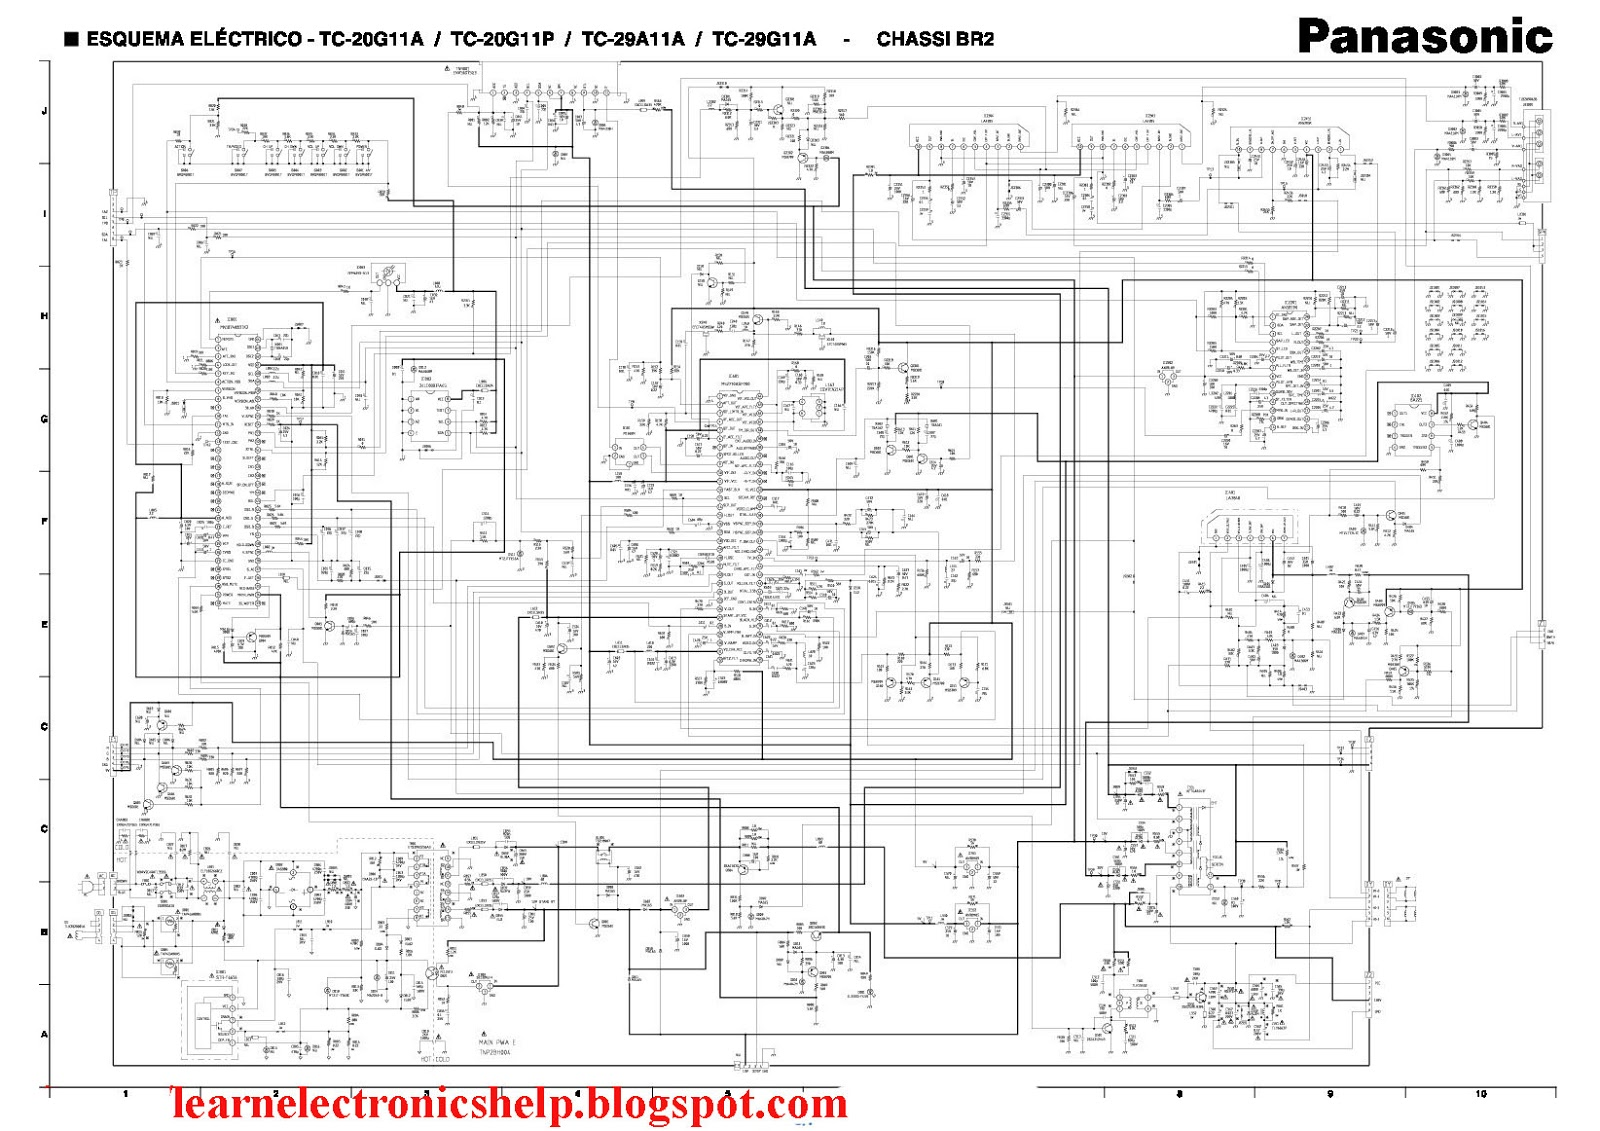 panasonic tv circuit diagram